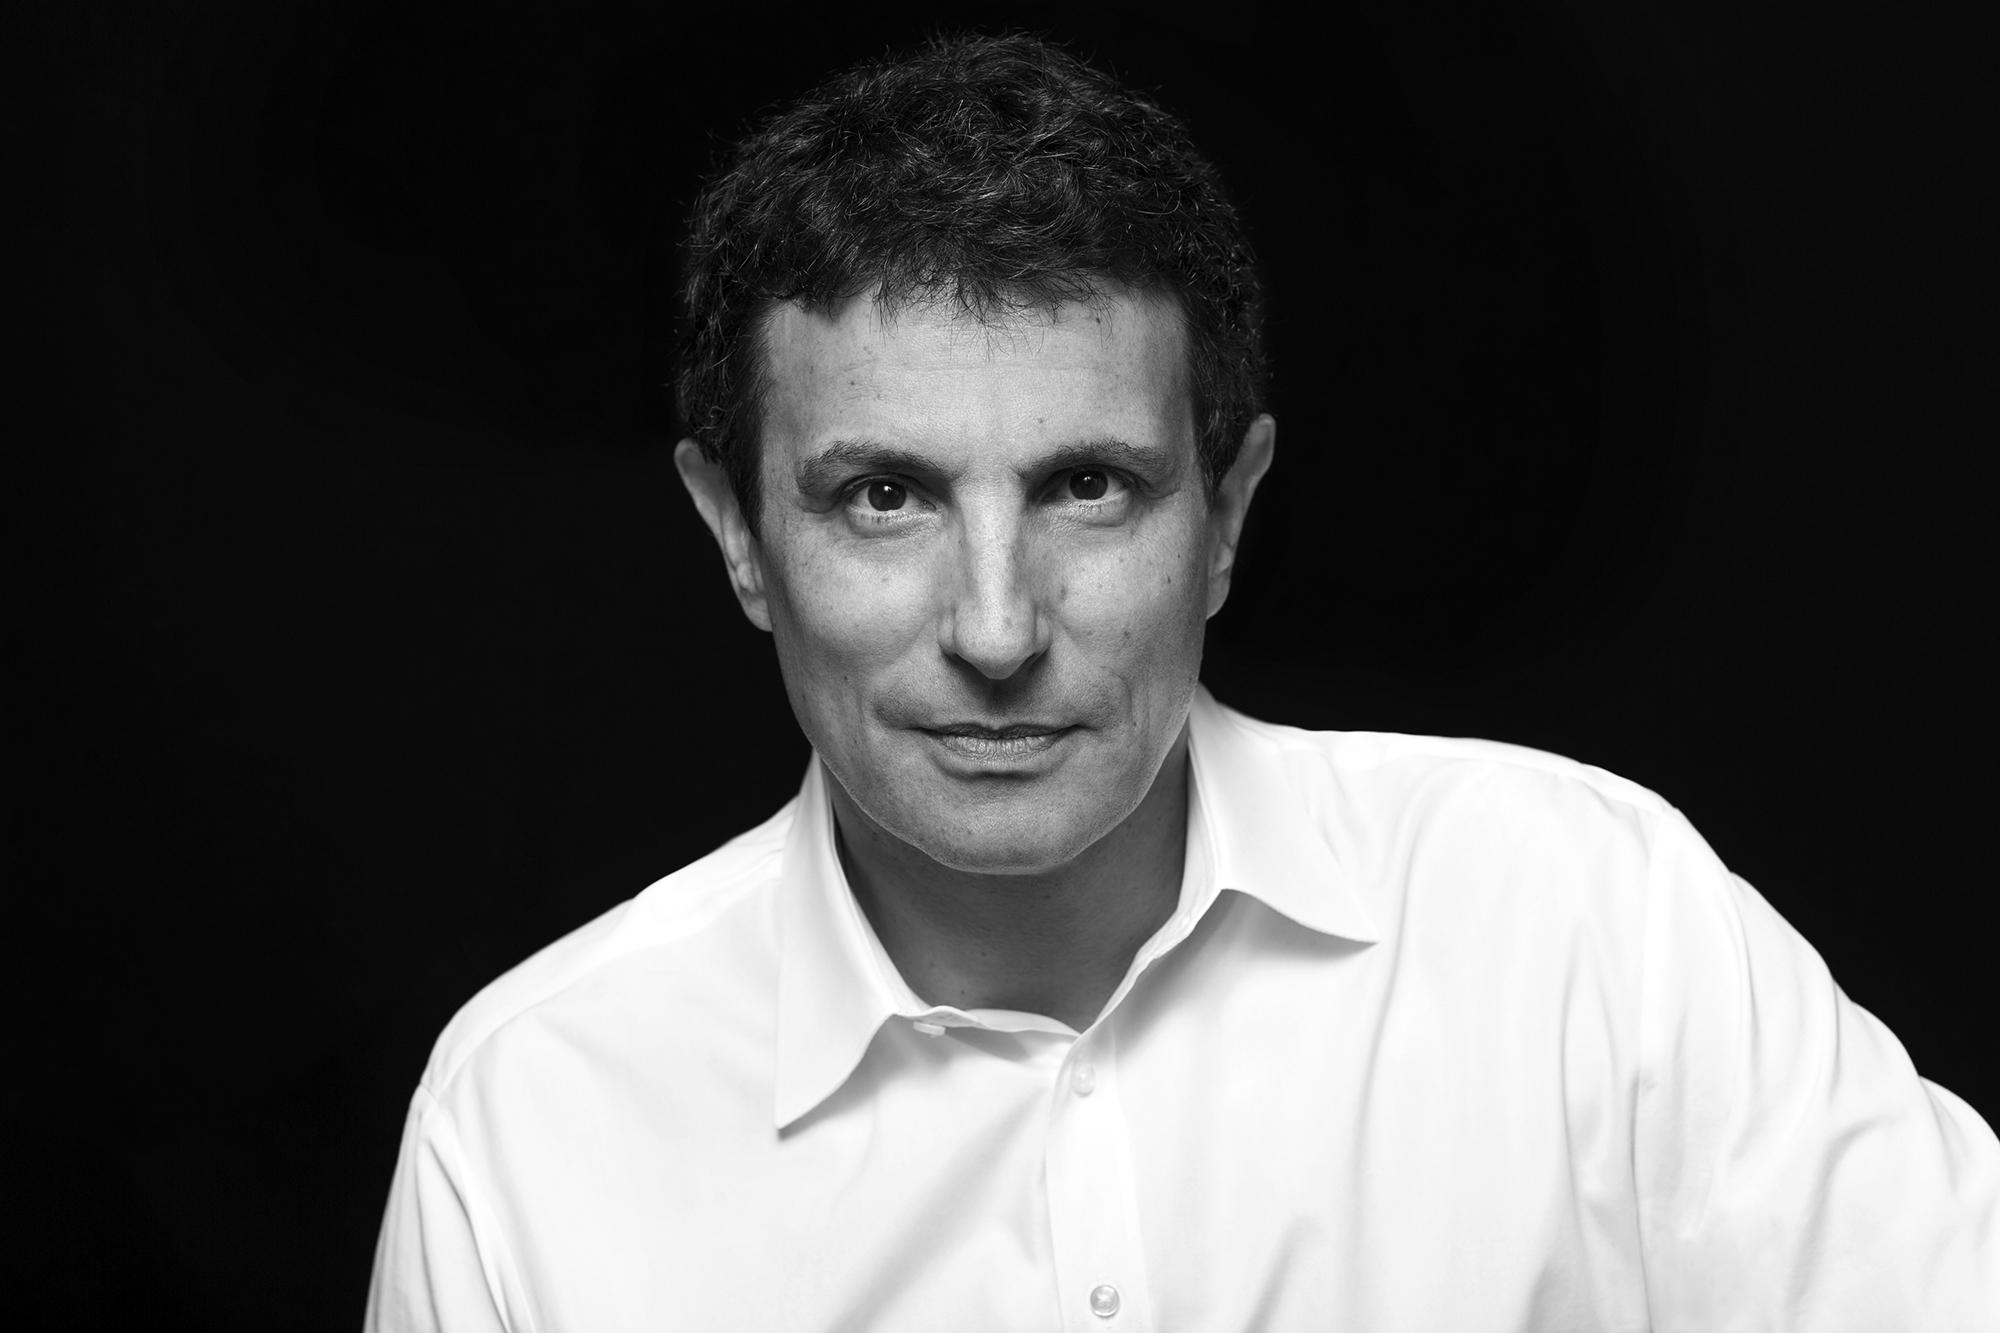 David Remnick, director de The New Yorker. Foto: Brigitte Lacombe. Cortesía The New Yorker